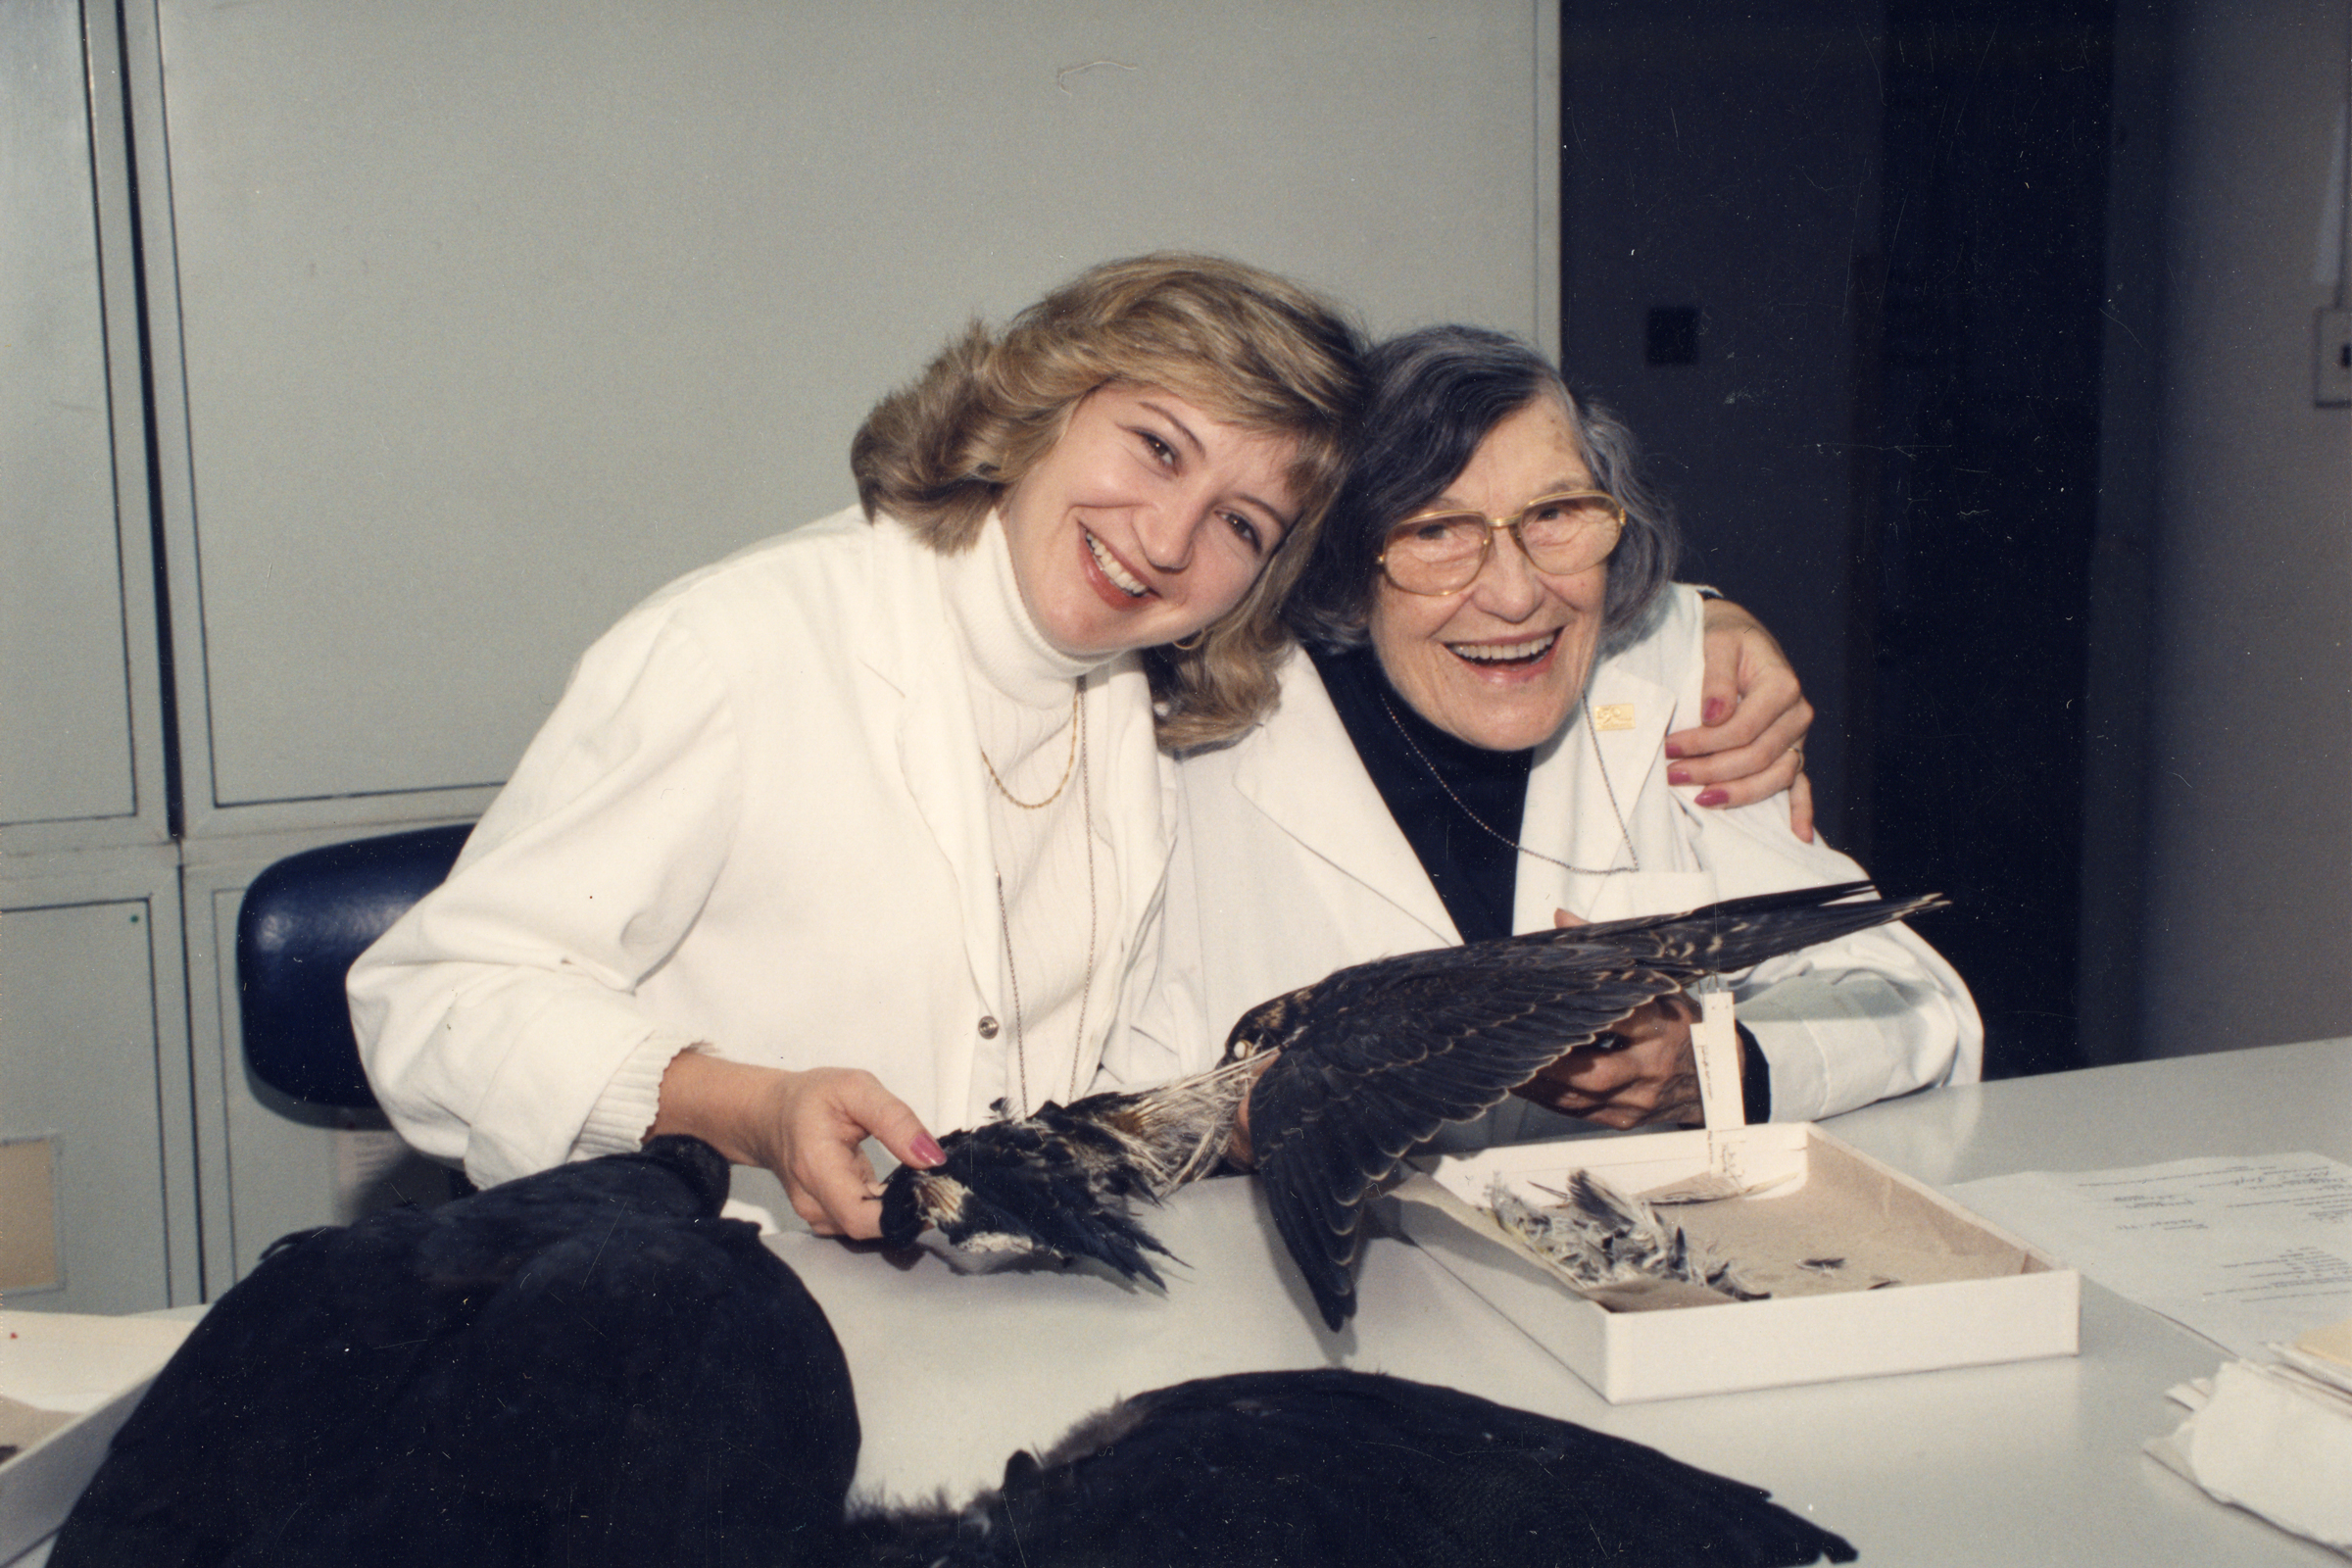 Carla Dove, left, with Laybourne at the Smithsonian, where Dove now runs the Feather Identification Lab using the methods that Laybourne pioneered. Courtesy of Smithsonian Institution Archives